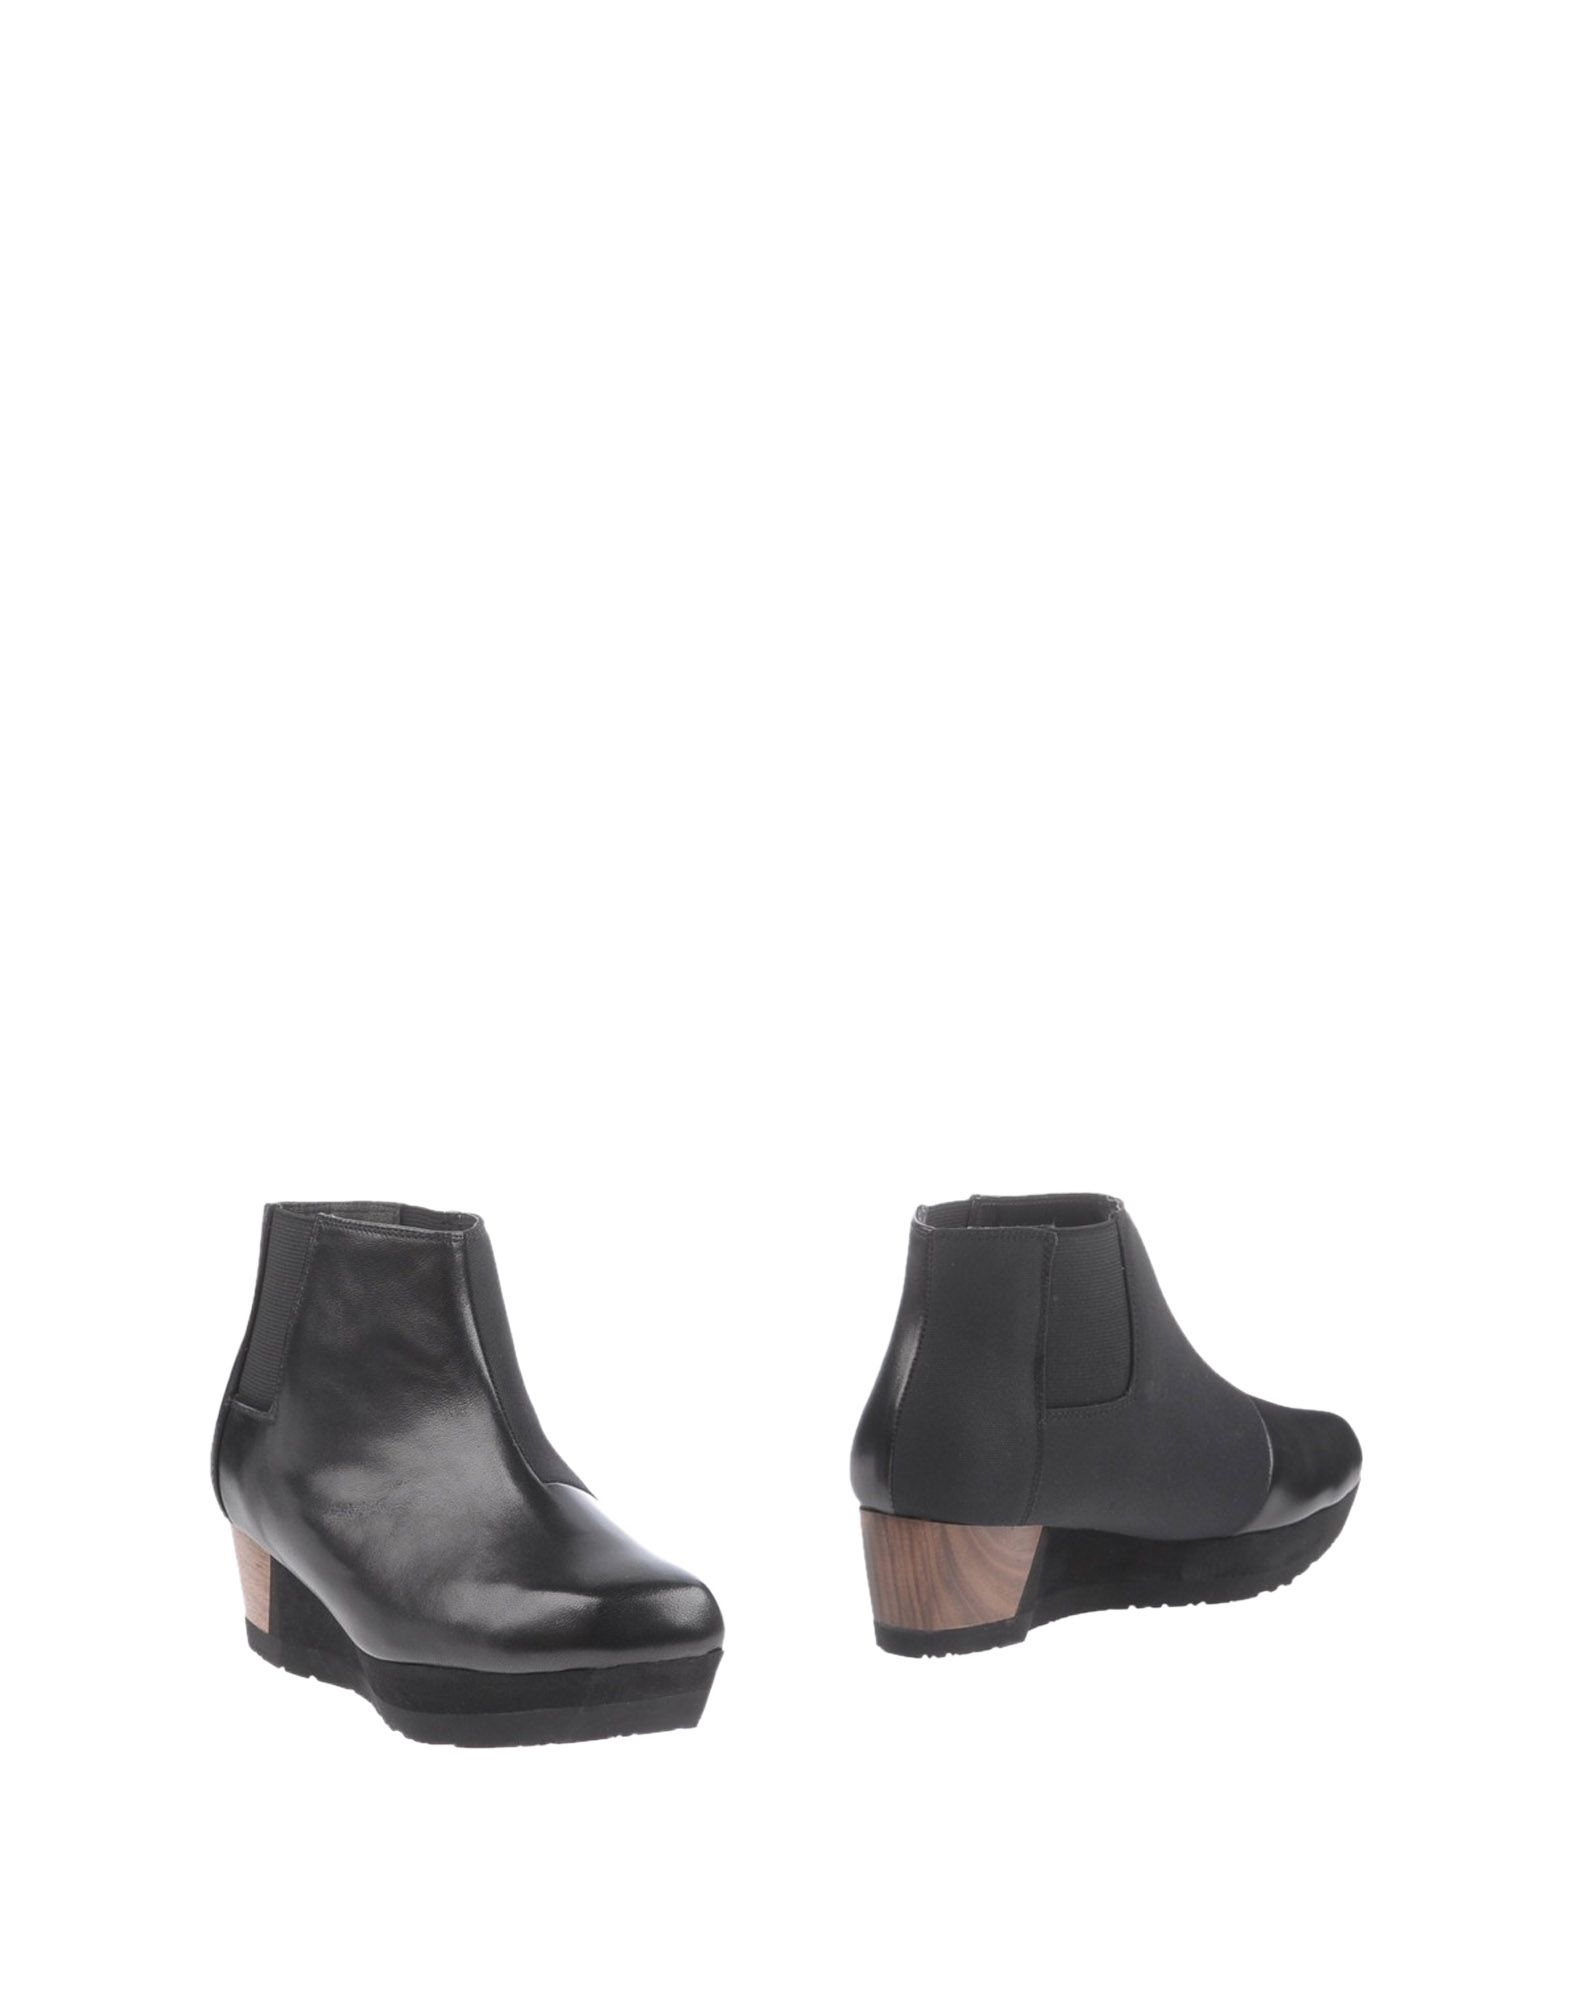 Issey Miyake Ankle Boot - Women online Issey Miyake Ankle Boots online Women on  Australia - 11213769EW cccbf6